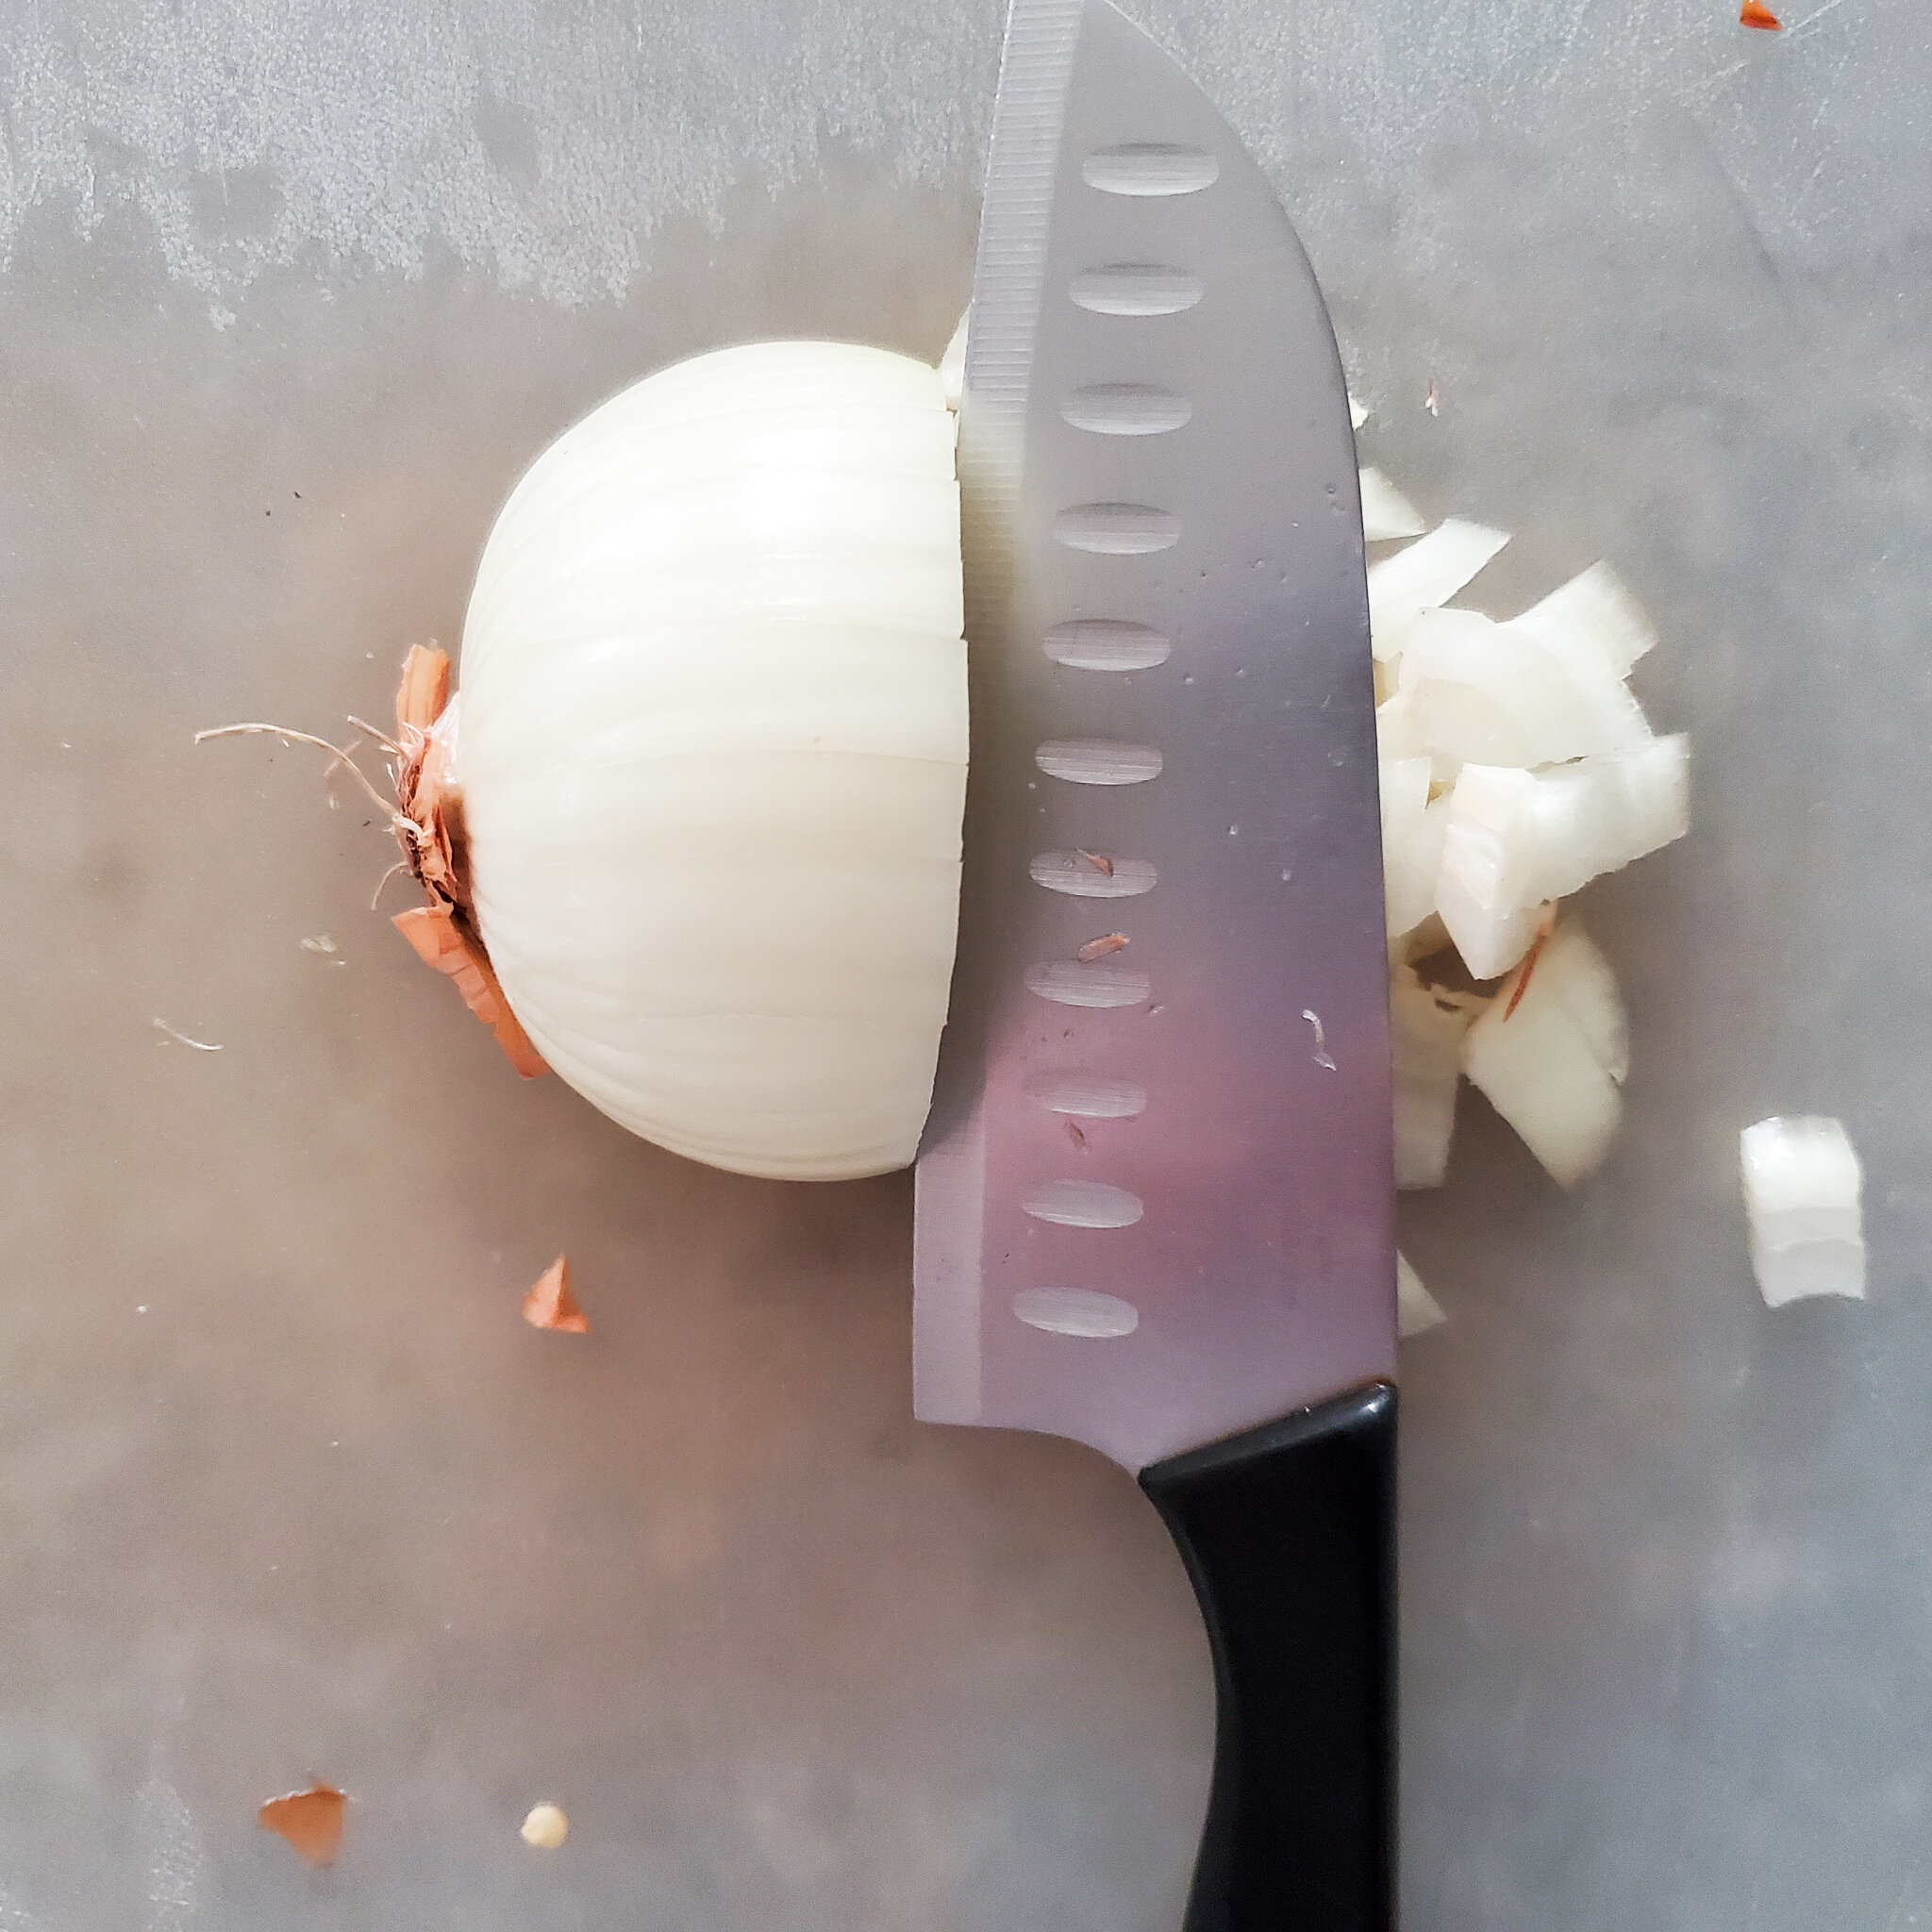 Next turn the onion so the root is to the side. Now make vertical cuts, until you reach the root. Now you have perfectly chopped onion. -